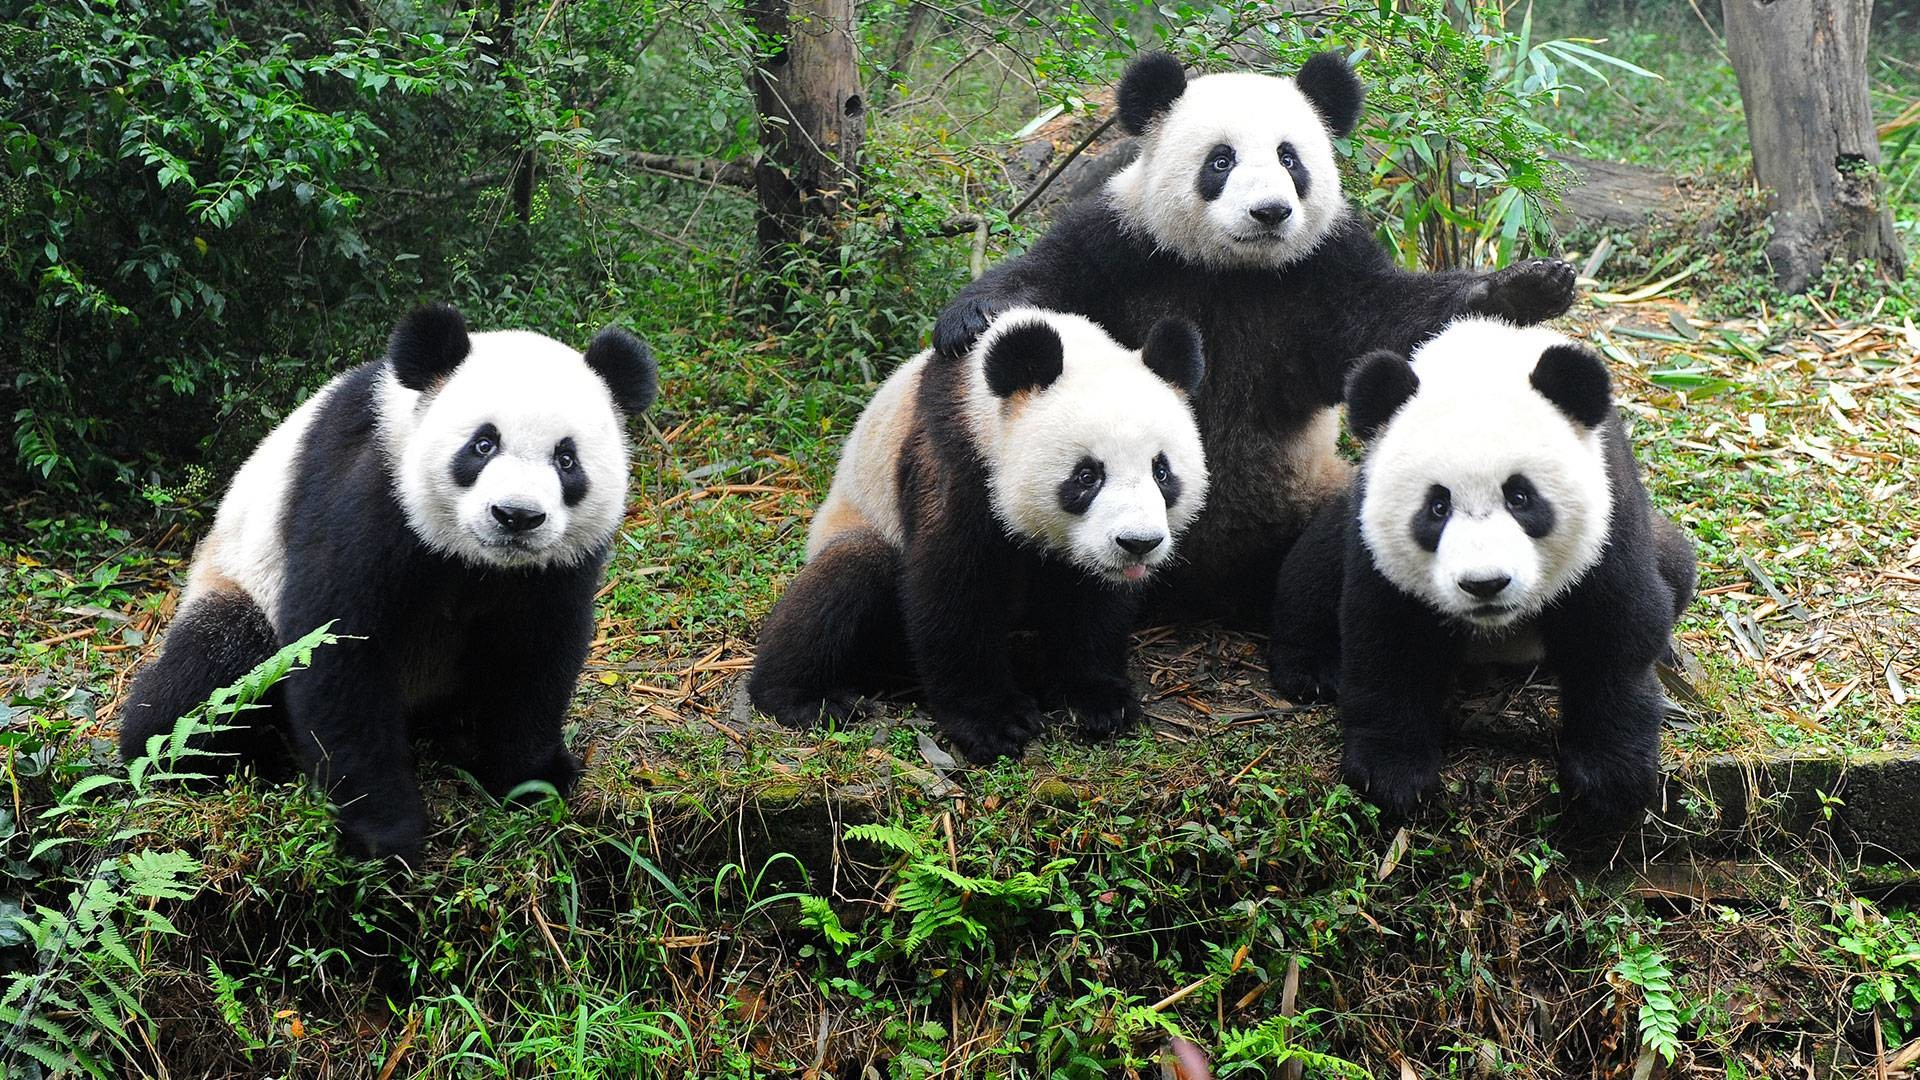 Res: 1920x1080, New Panda HD Quality Wallpapers for PC & Mac, Laptop, Tablet, Mobile Phone